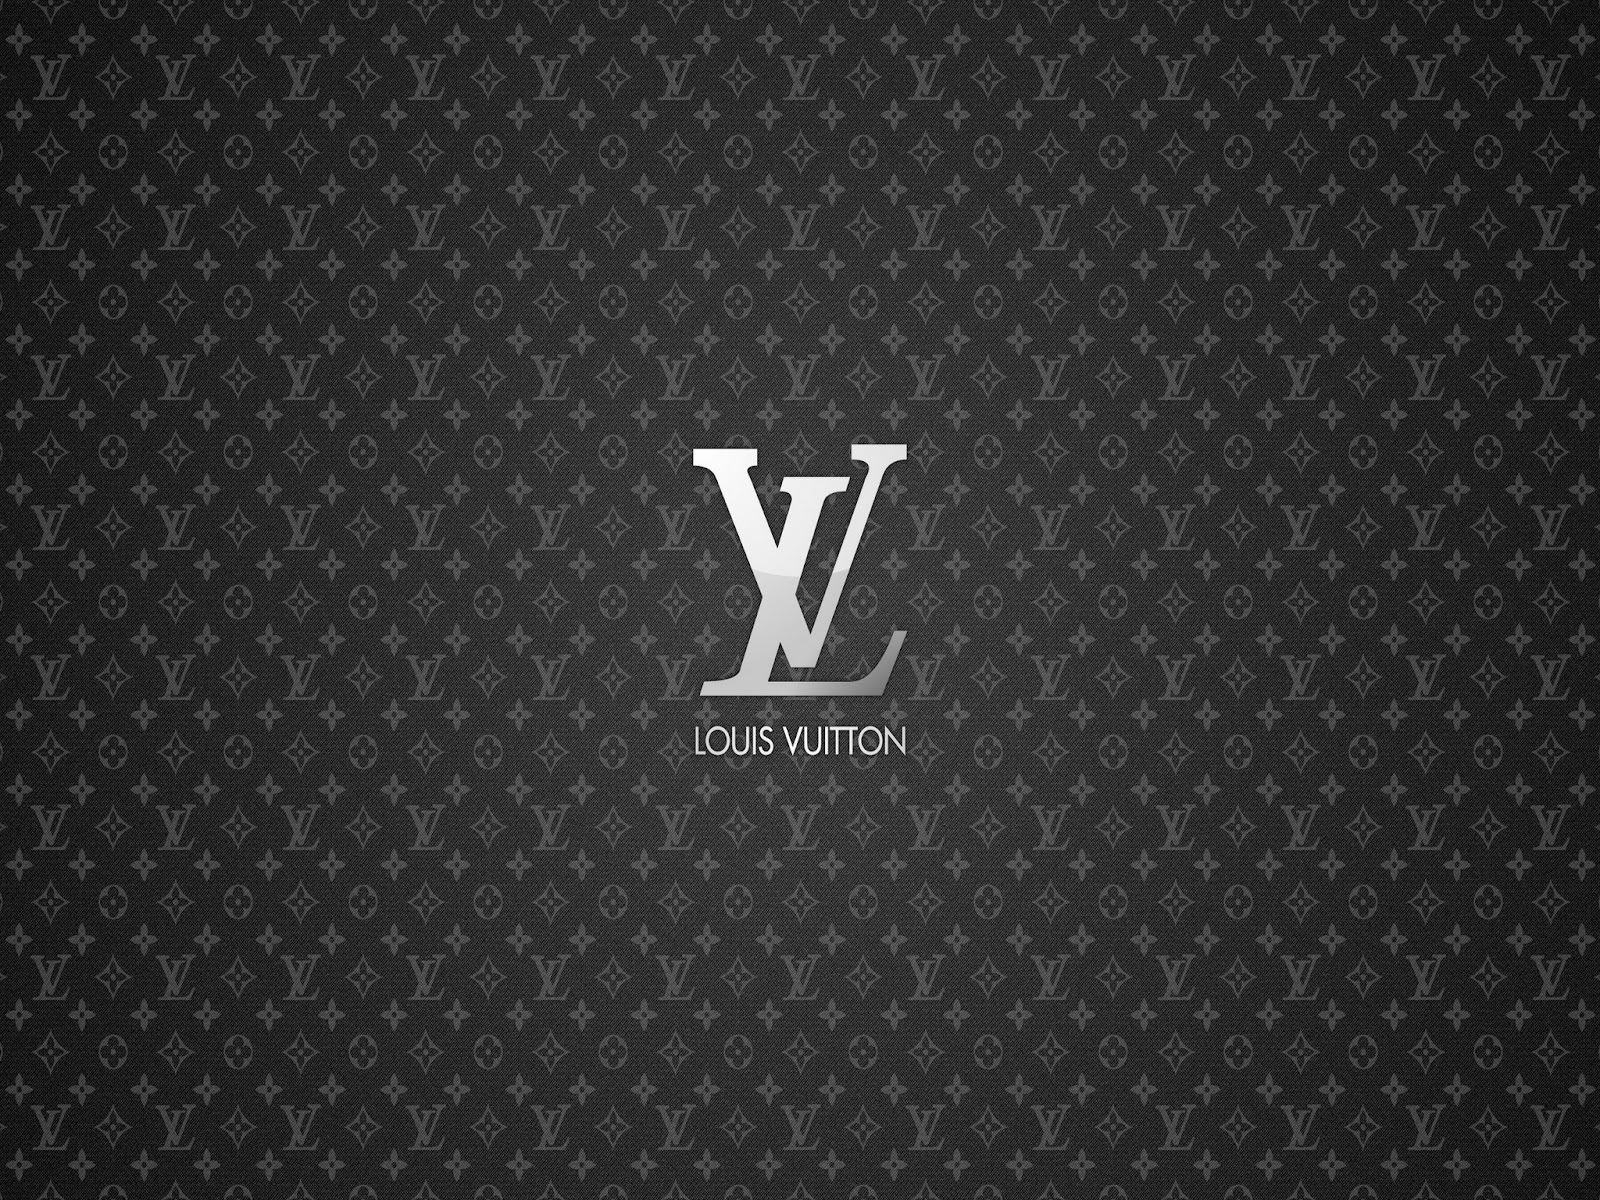 This Louis Vuitton iPad 2048 X 2048 Wallpaper can be used as an new iPad 3 background or theme. High Resolution 2048 X 1536 and 2048 X 2048 size wallpaper ...